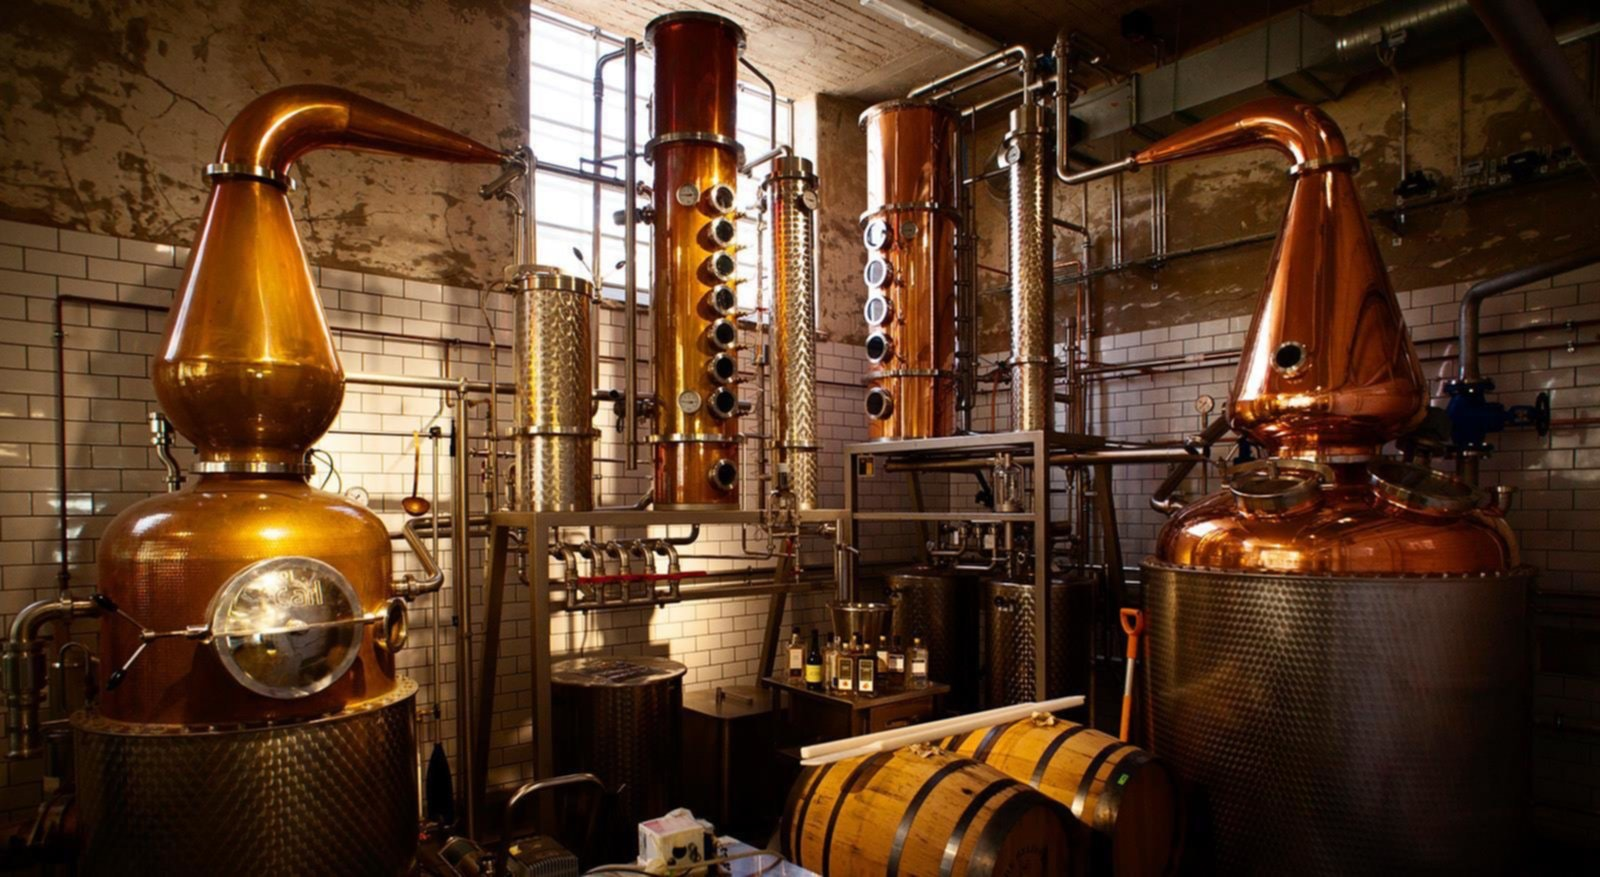 The Helsinki Distilling Co. tours & tastings